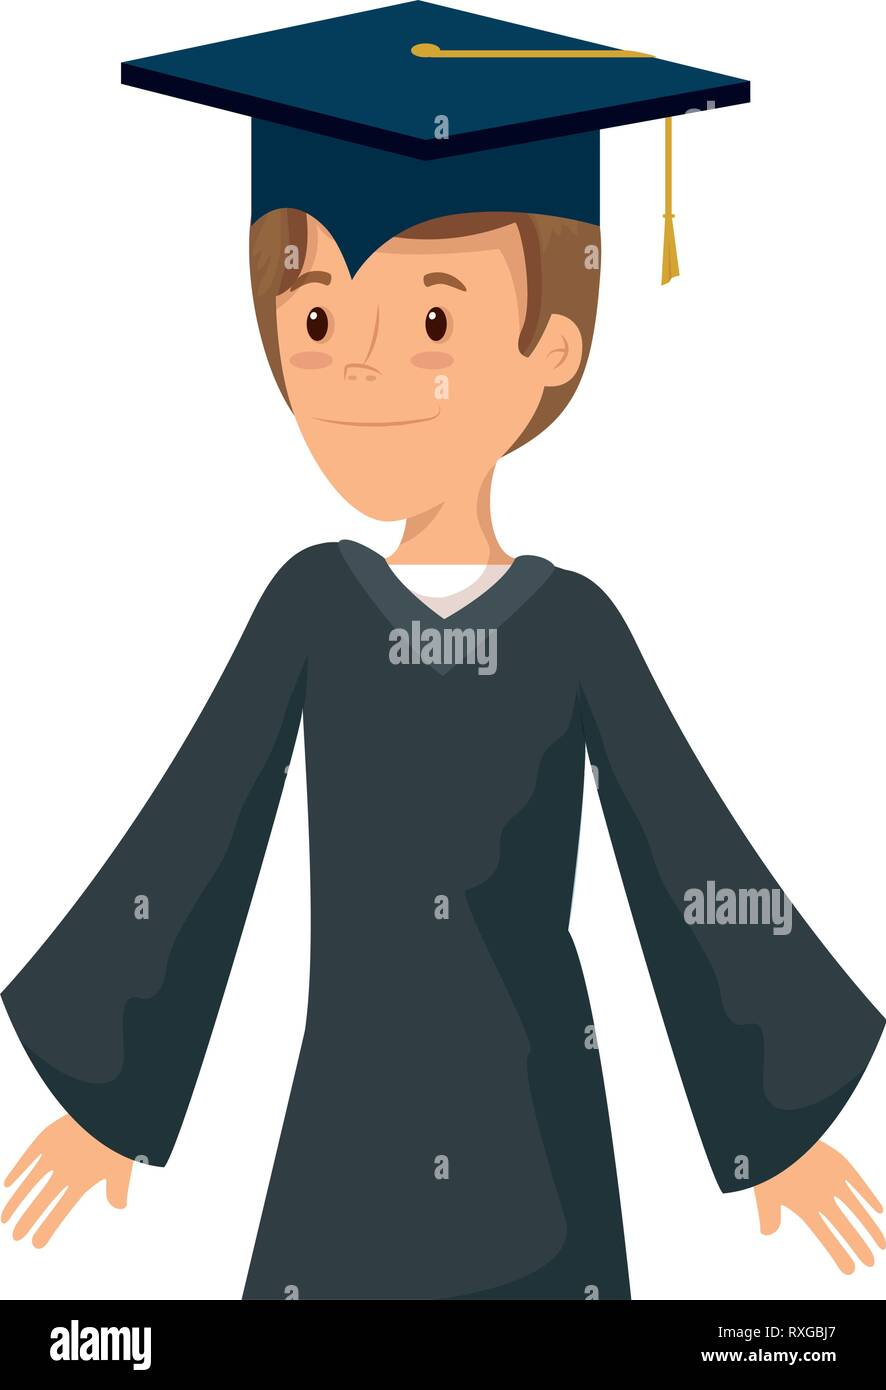 young student graduated character - Stock Image